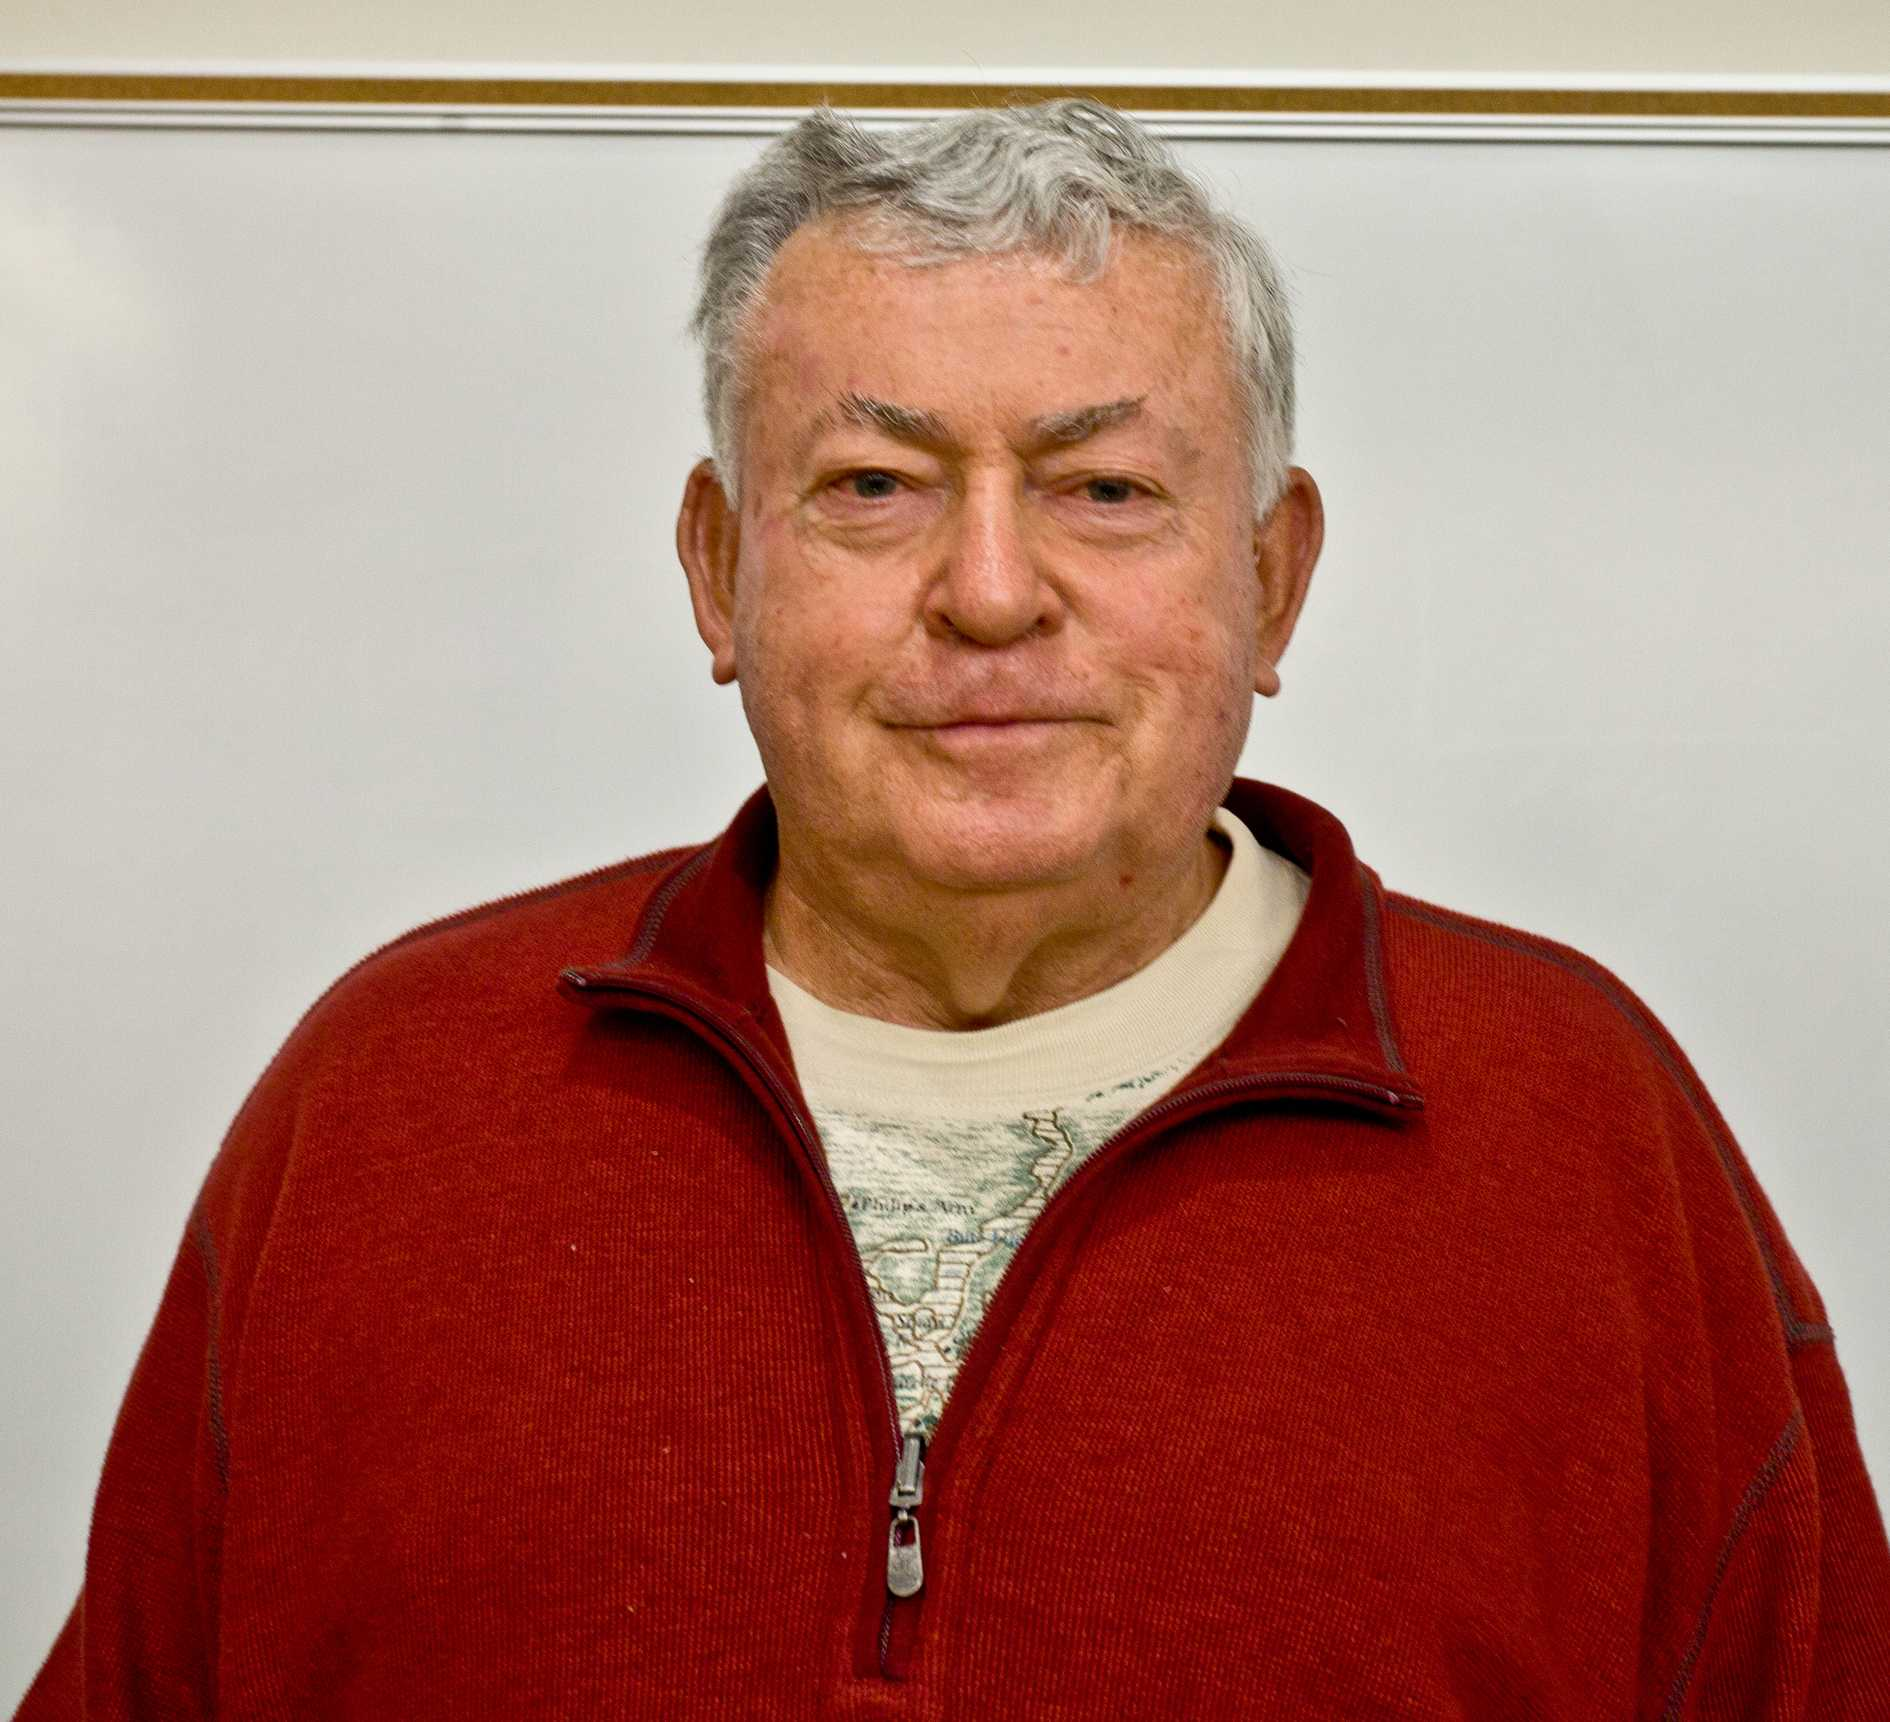 Vojin Joksimovich, PhD spoke about a nuclear Iran and its meaning with respect to the United States at San Diego City College on Wednesday, Mar. 20.